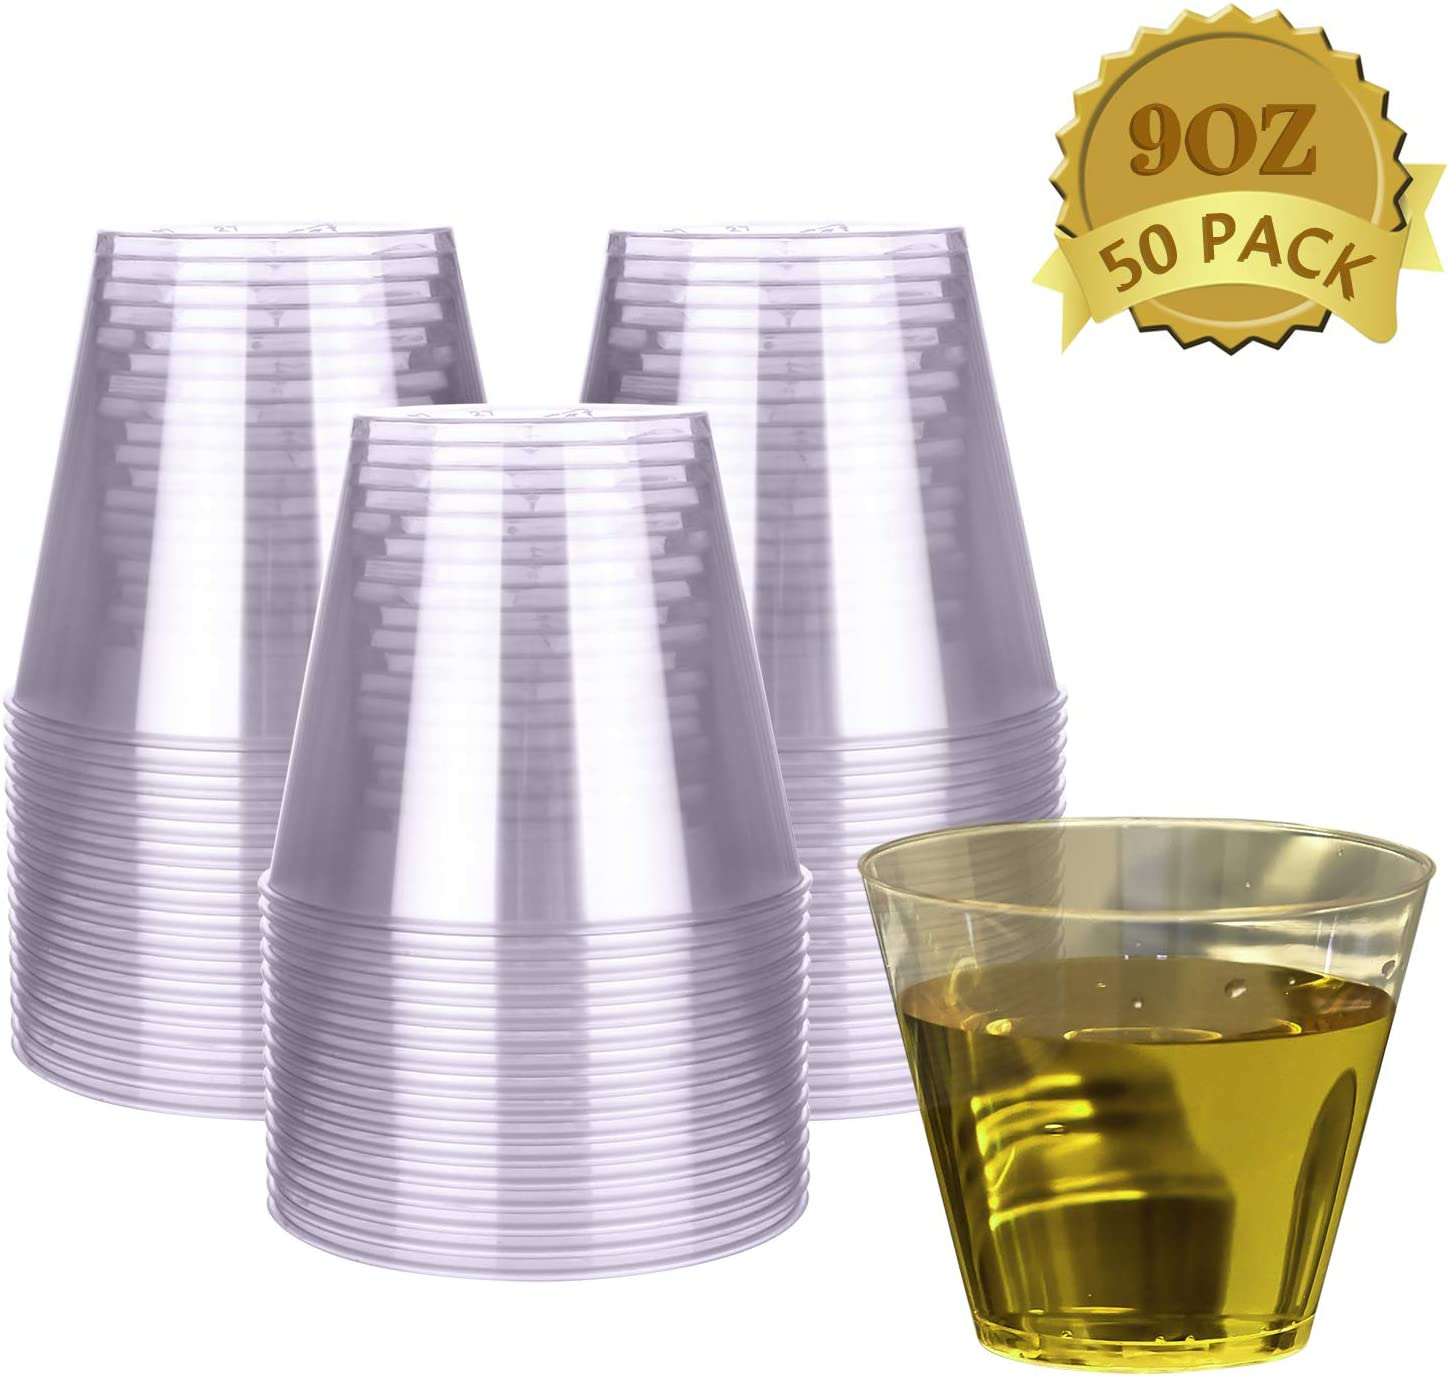 HyHousing 9 Oz Clear Plastic Cups 50 Pack, Hard Disposable Plastic Cups Tumblers Ideal for Daily Life at Home, Party Wedding Drinking Wine Tasting Food Samples (T9-50)